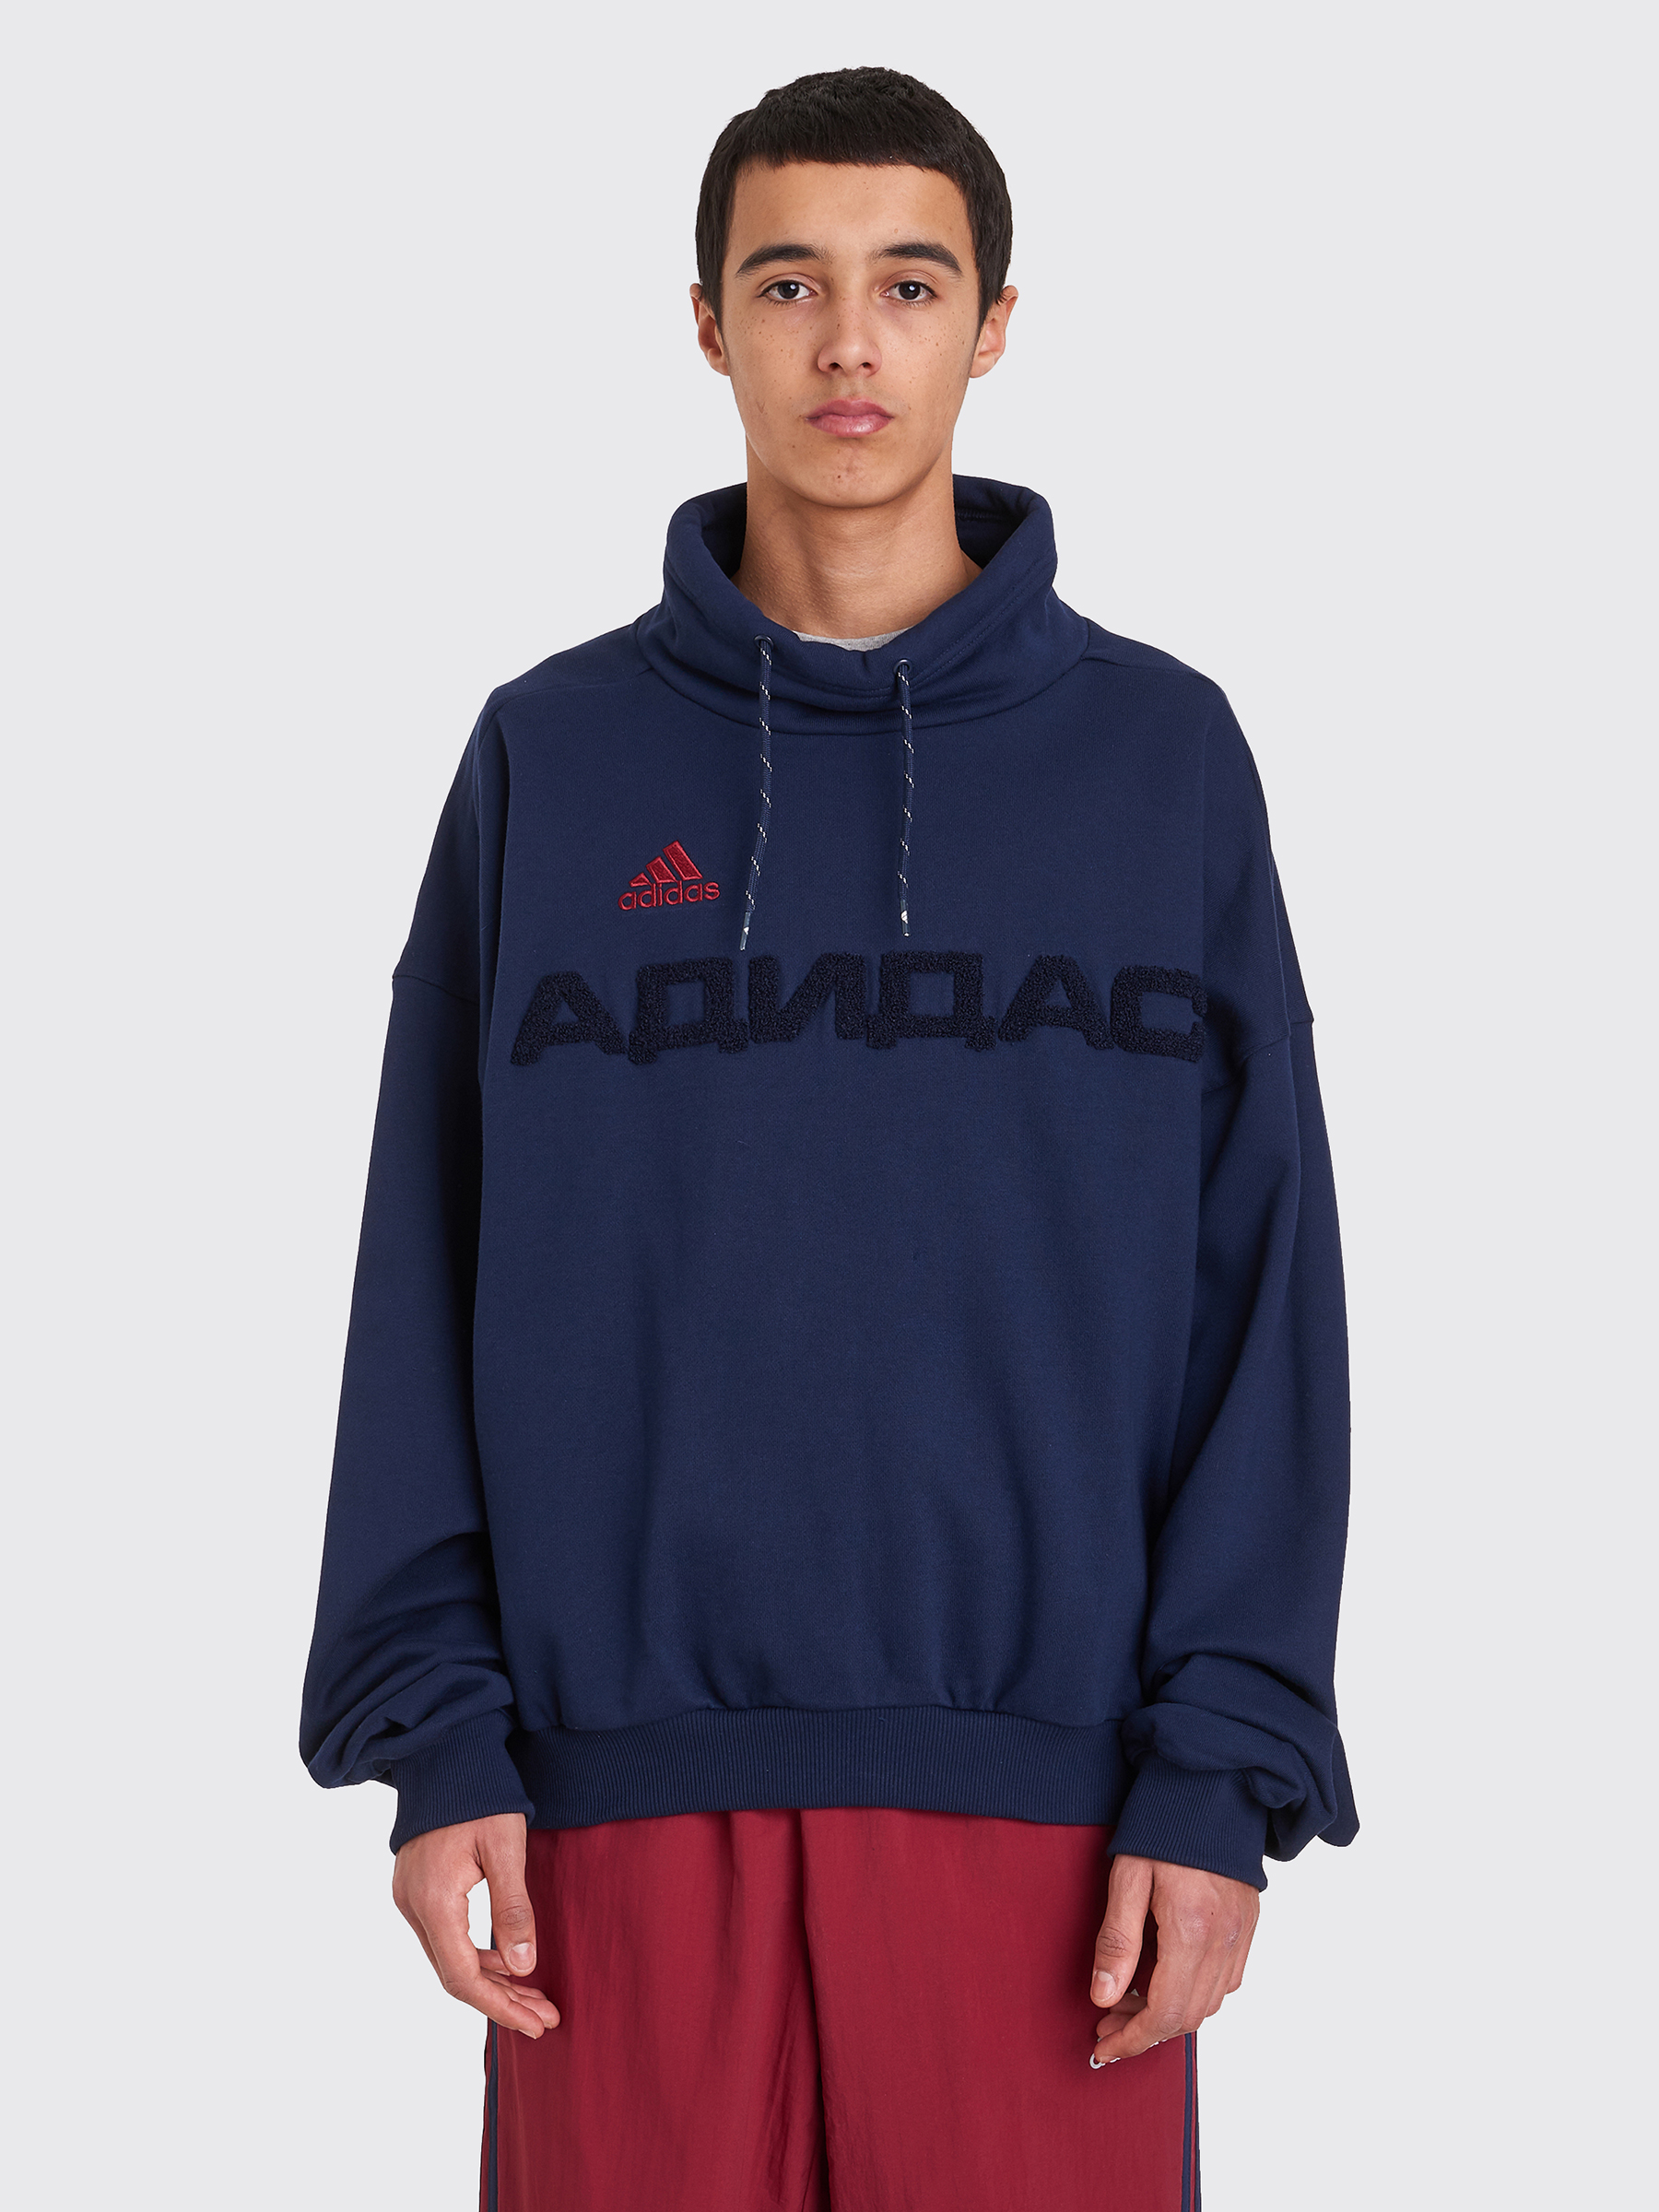 save off f437c 7e702 Very Goods | Gosha Rubchinskiy - Adidas Sweat Top Navy ...